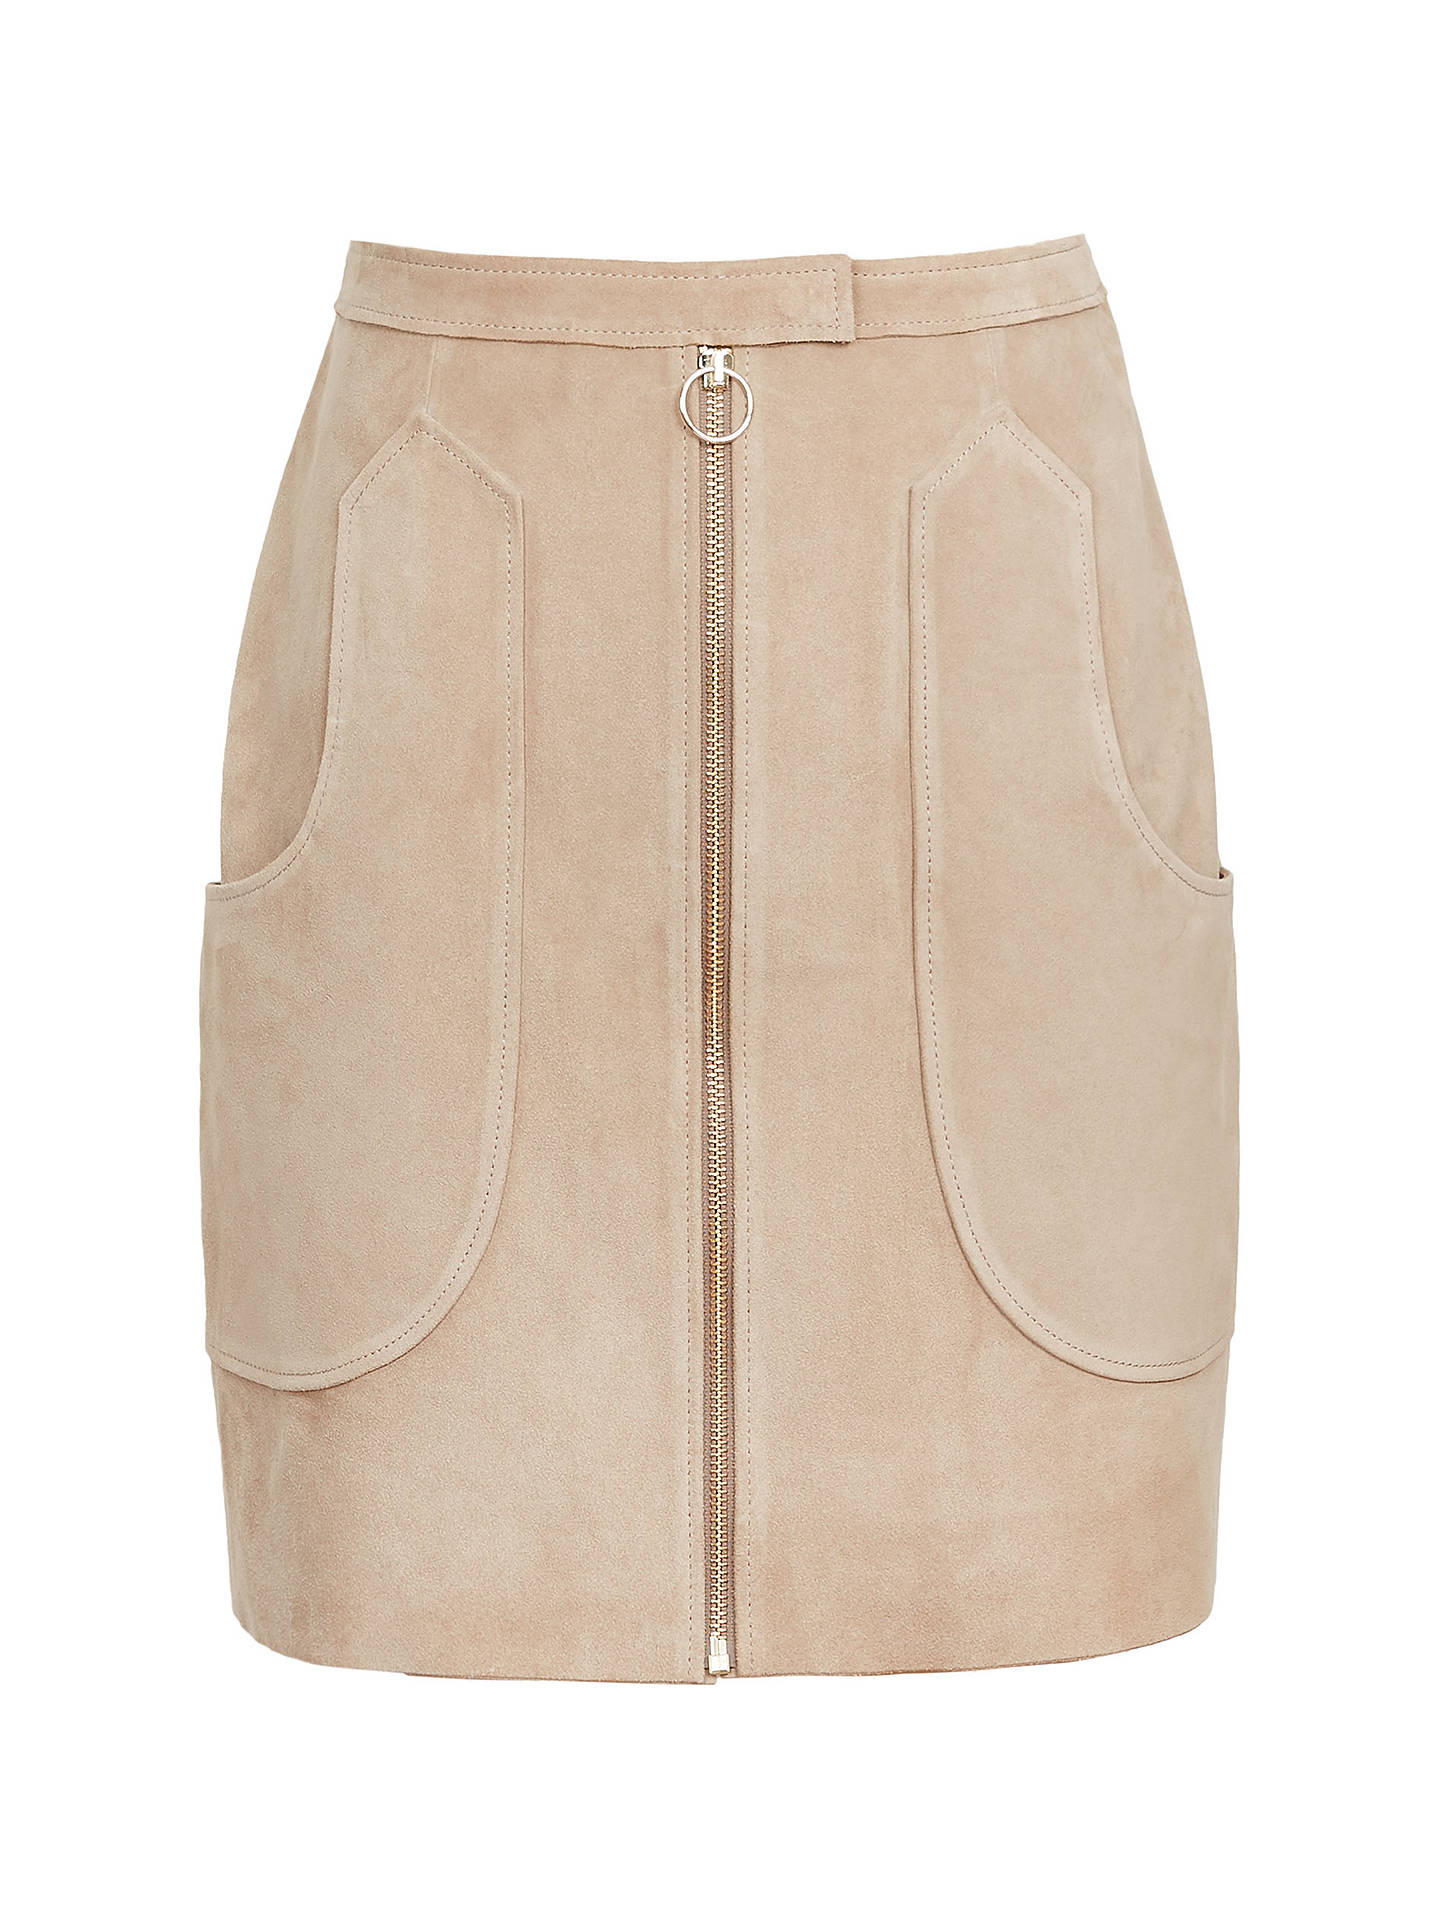 202193a24 ... Buy Reiss Keaton Suede Mini Skirt, Sand, 6 Online at johnlewis.com ...